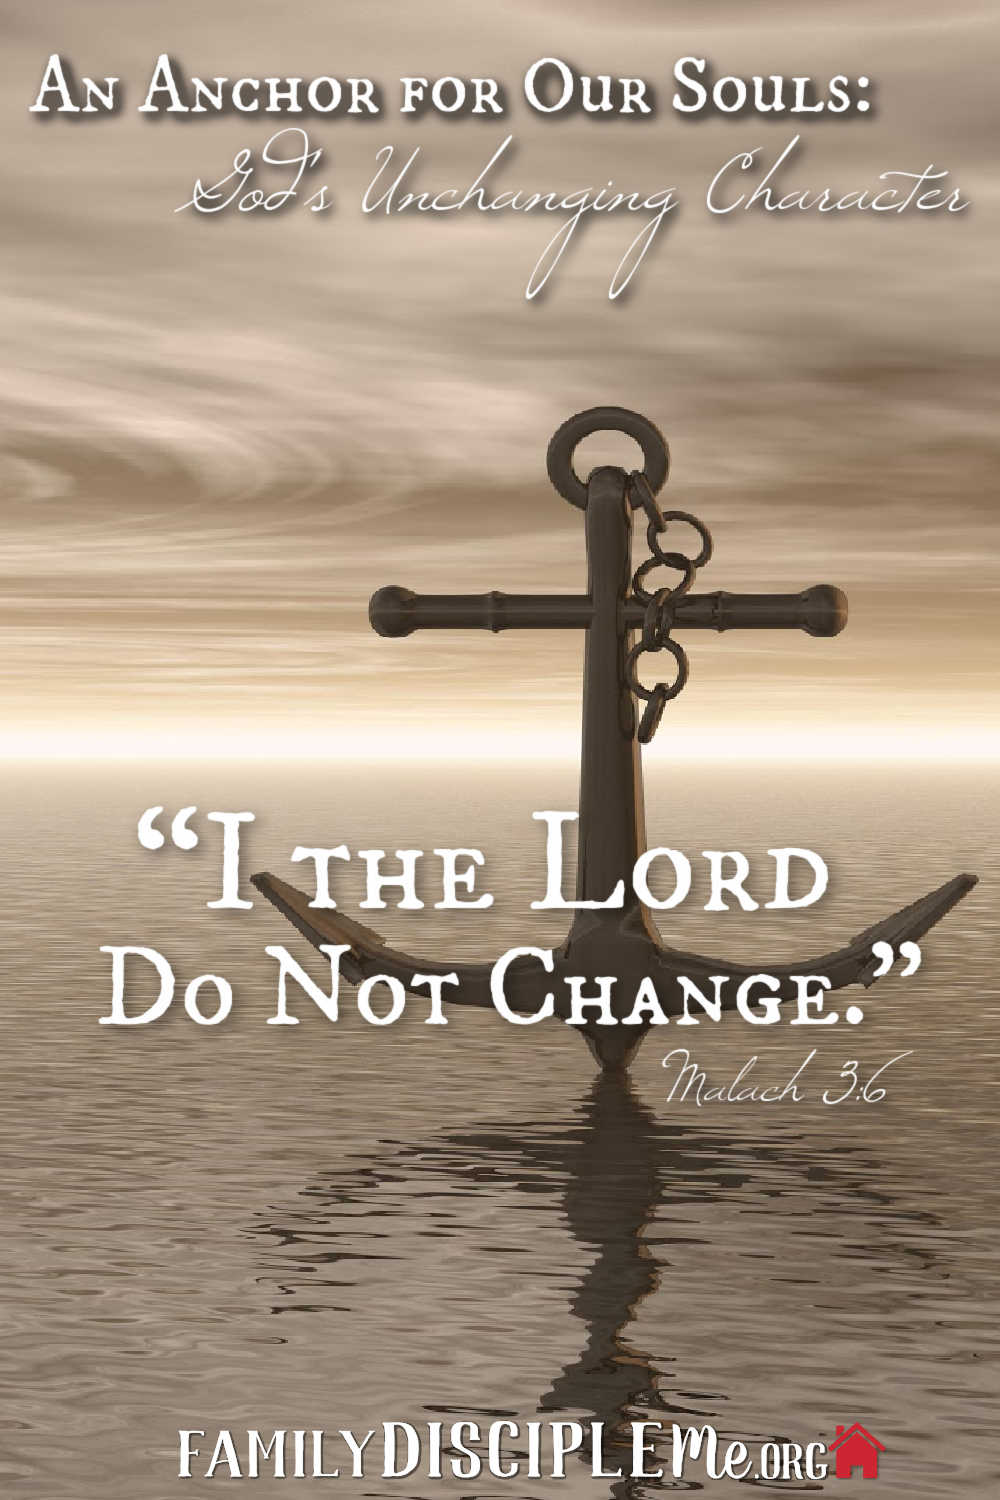 God's Unchanging Character